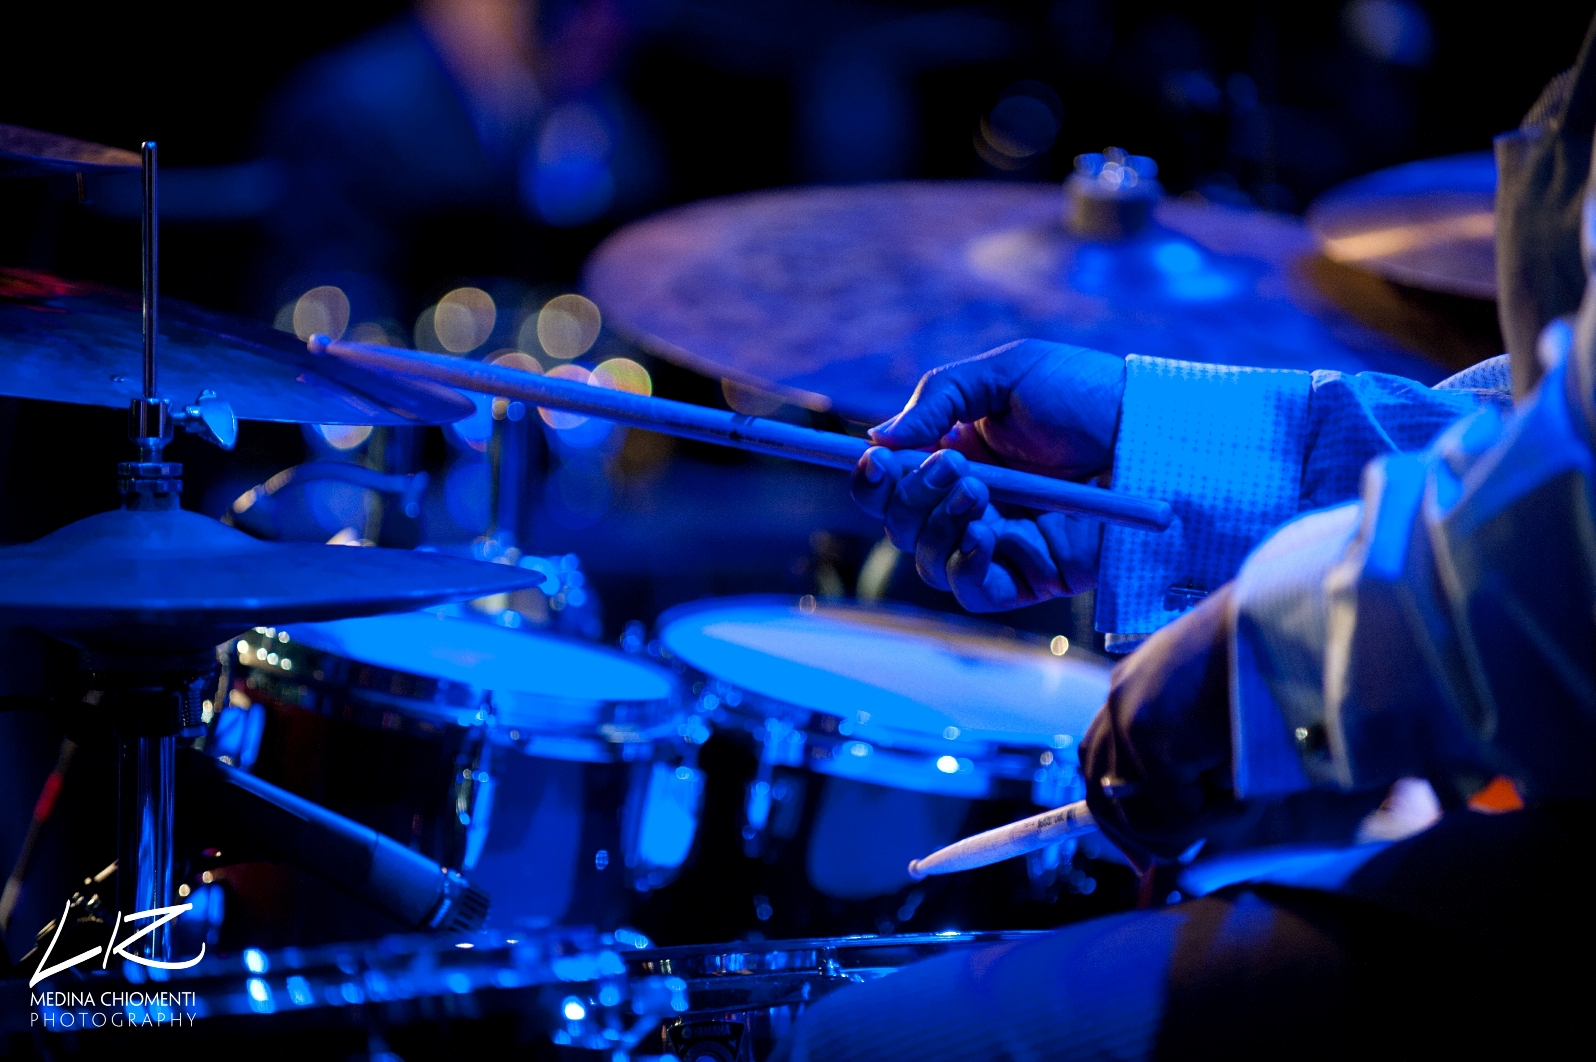 Terreon Gully on Drums for Dianne Reeves